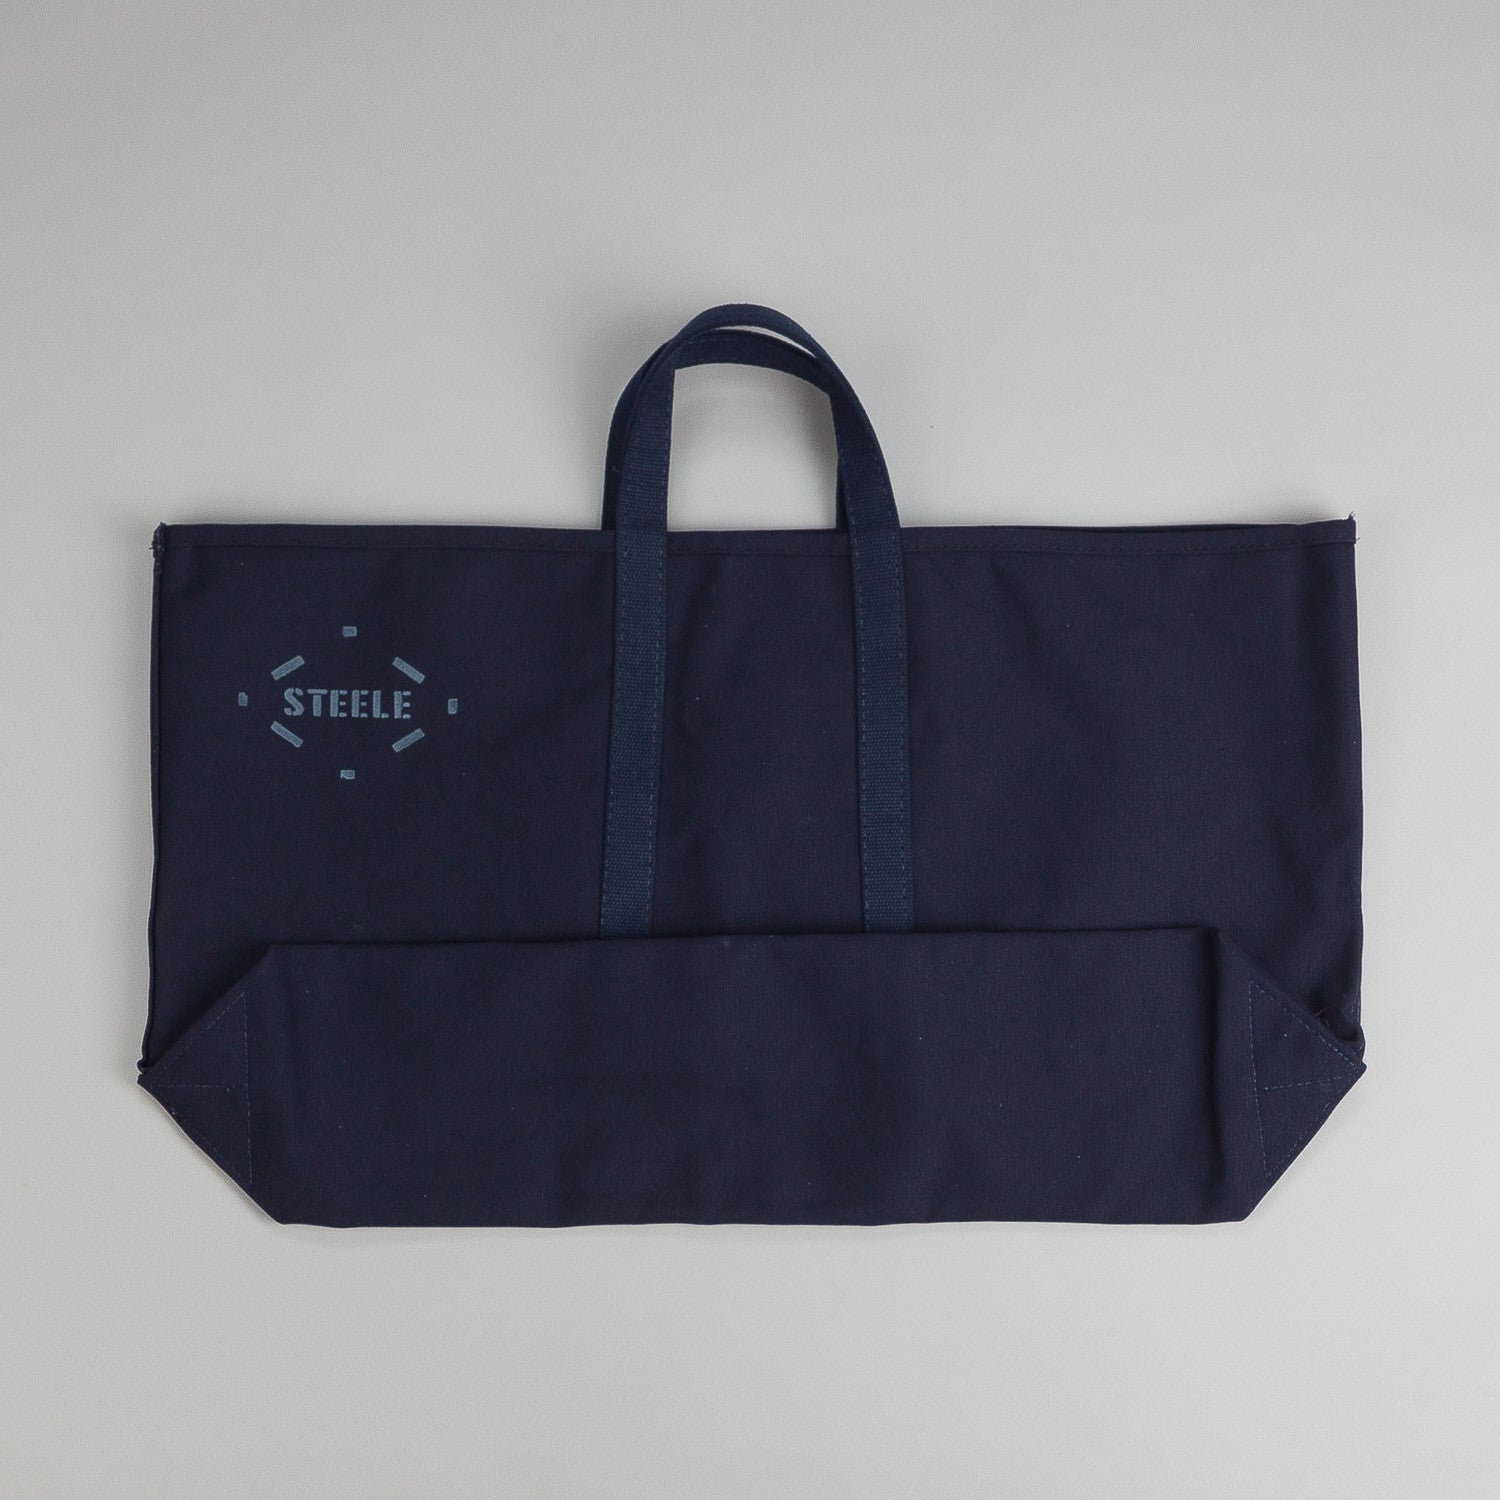 Carhartt Steele Canvas Tote Bag - Navy